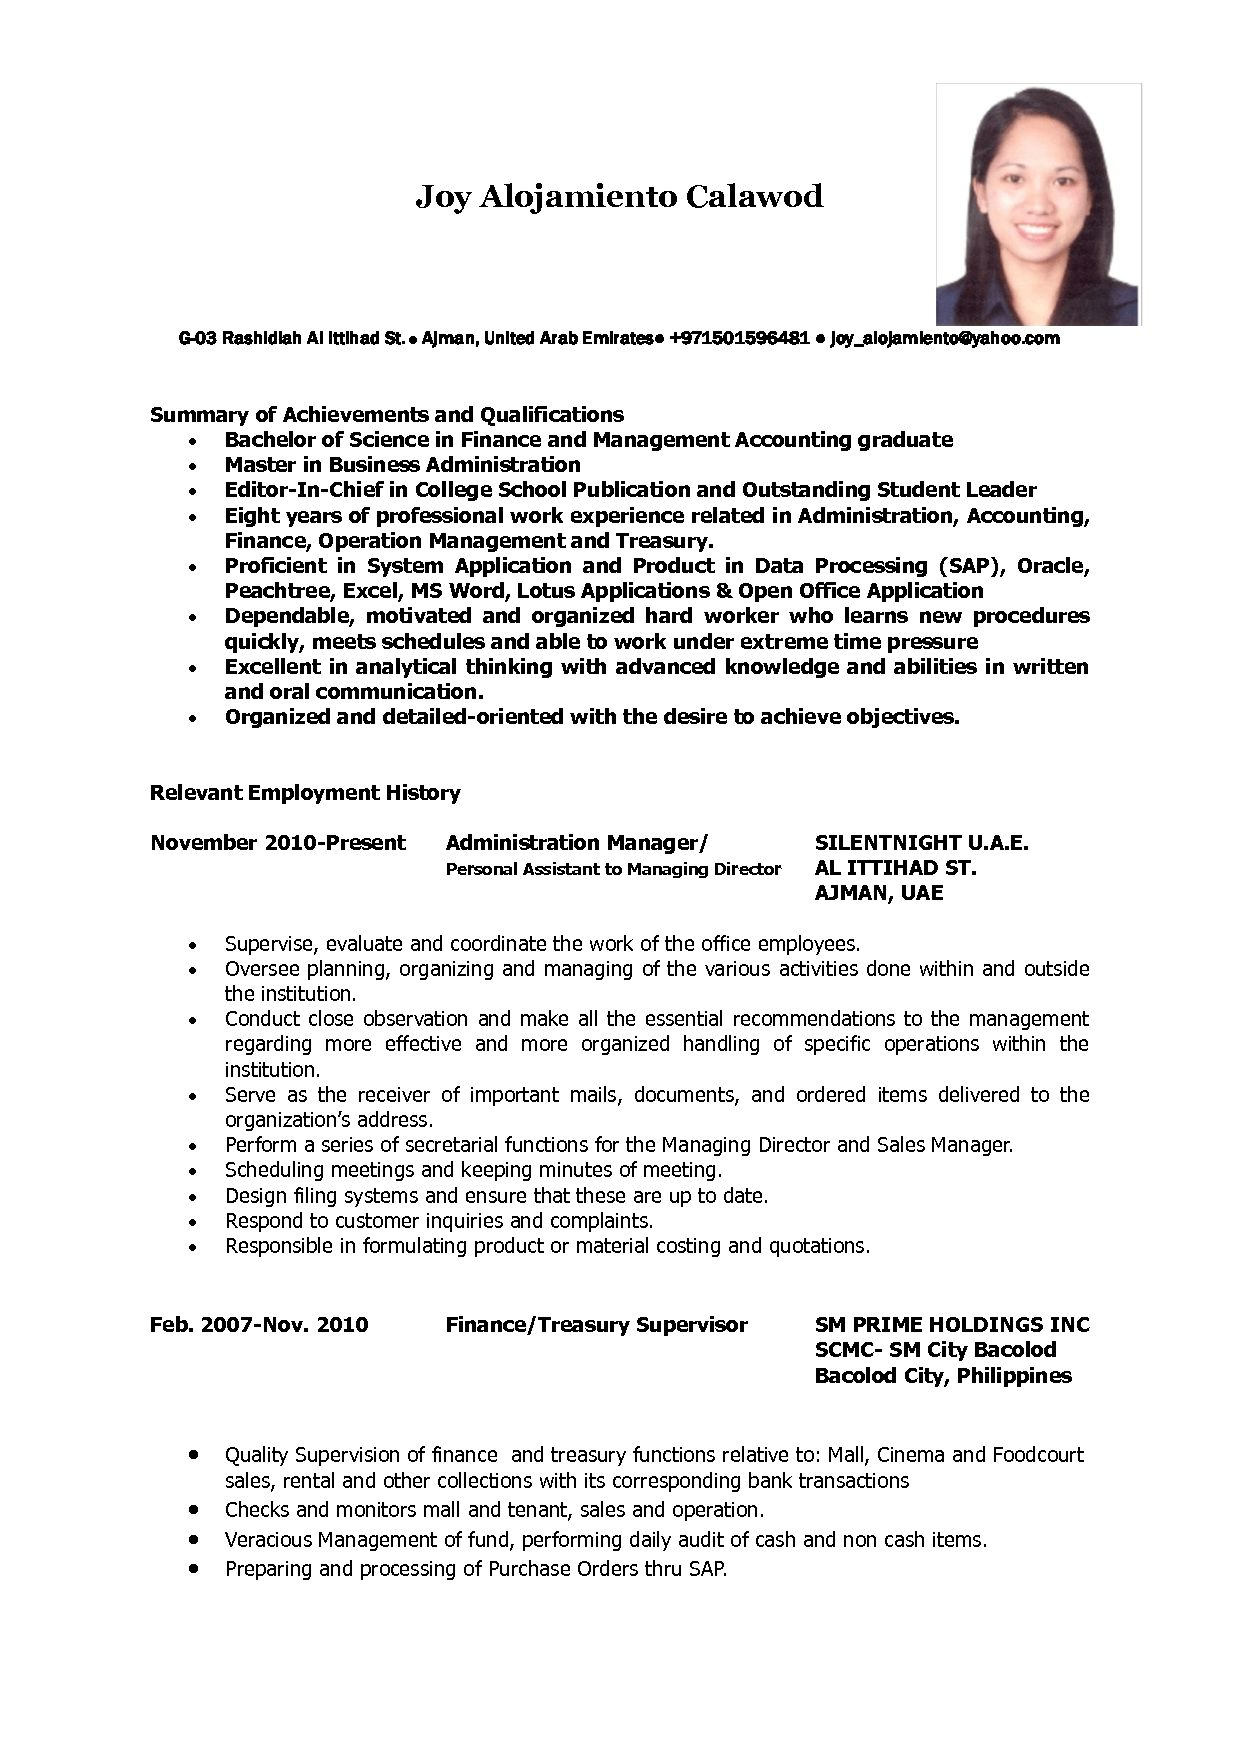 How To Get Cover Letter Template On Word 2010 Cover Letter Templates Job Resume Format Resume Format Cover Letter Template